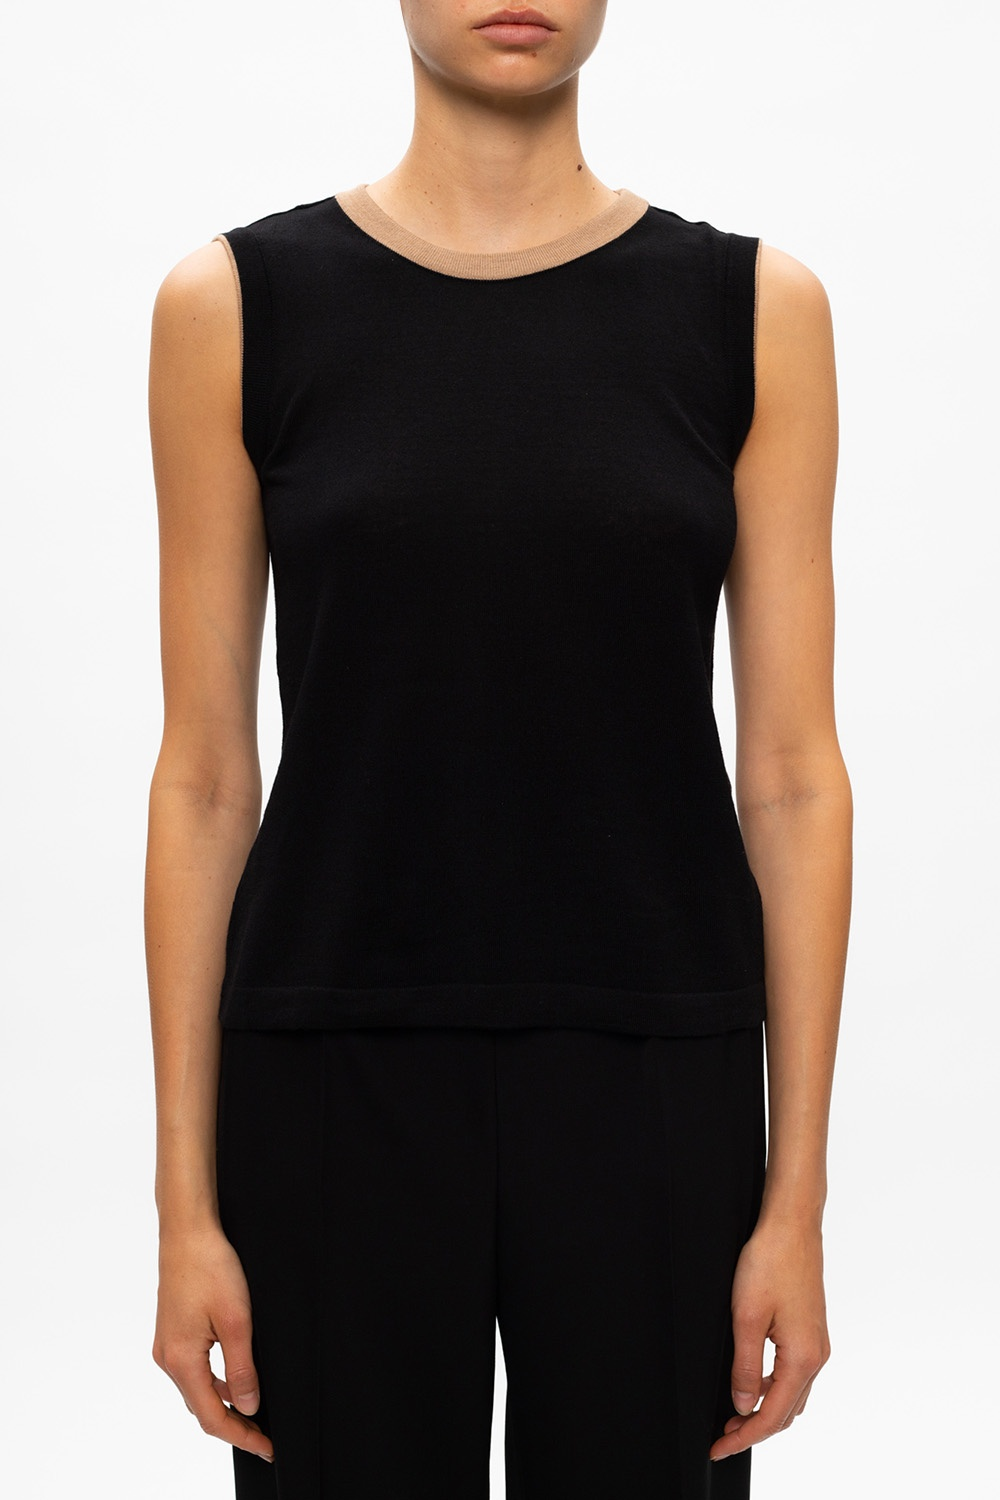 Salvatore Ferragamo Slip top